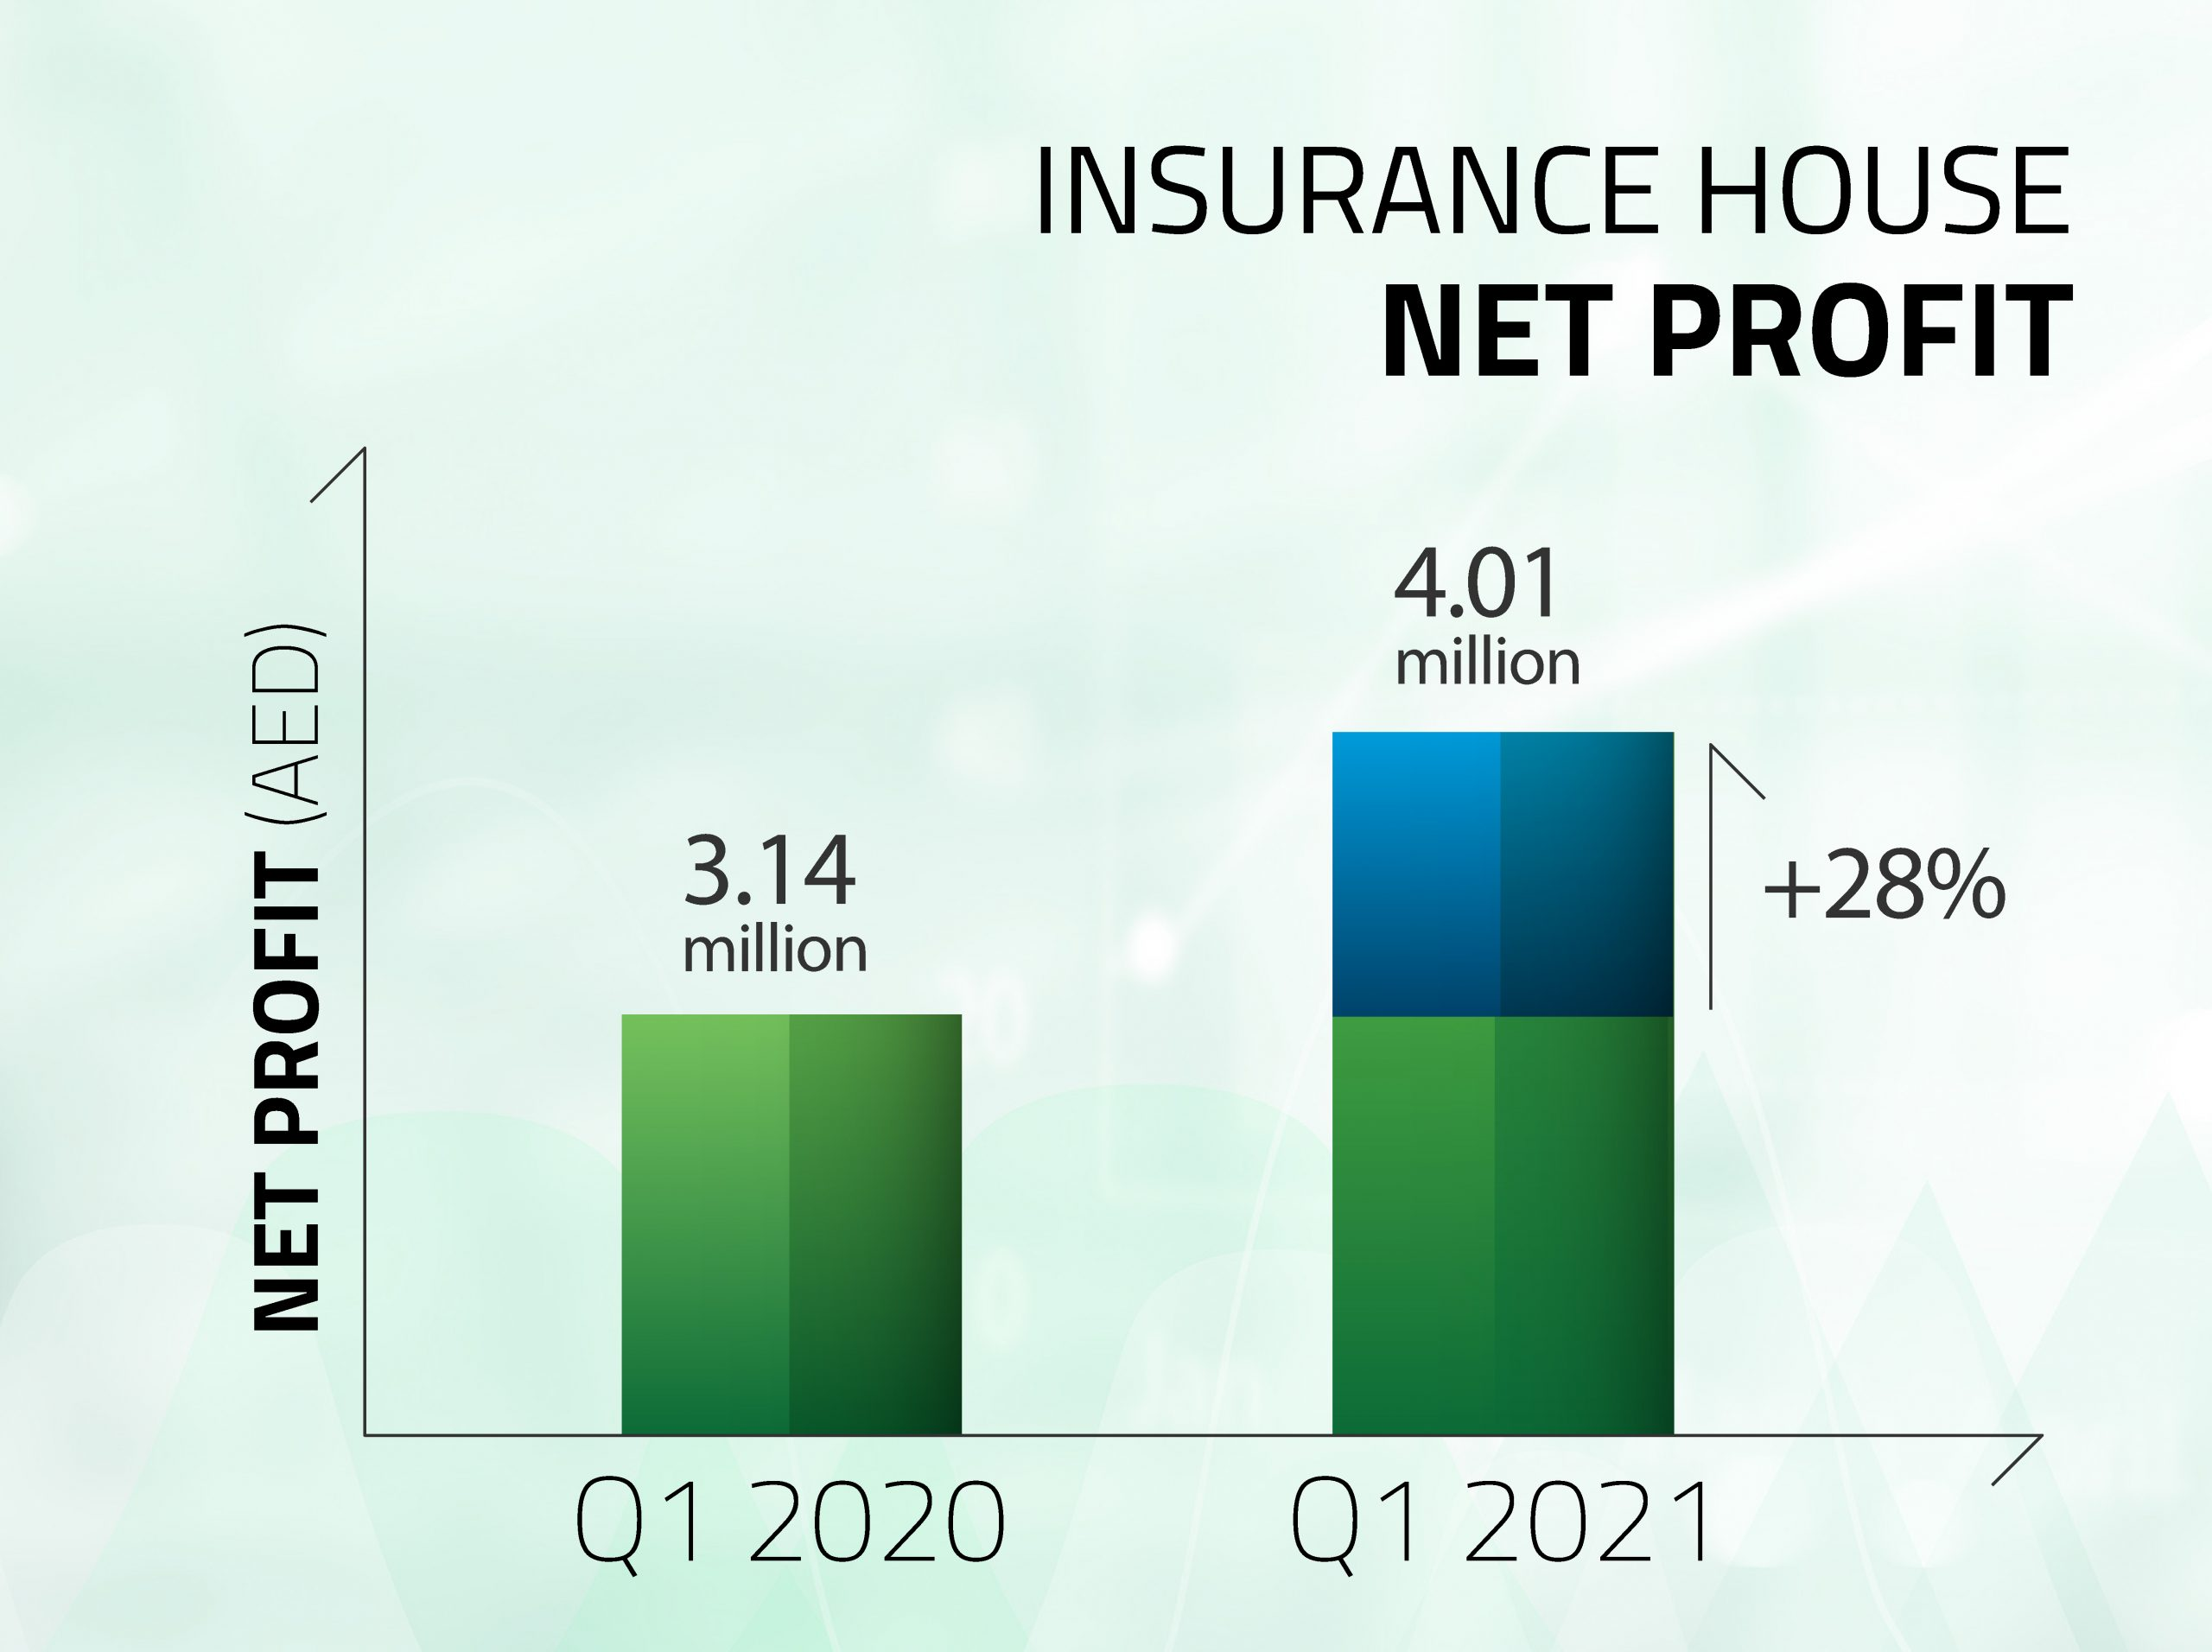 Insurance House Registers a 28% Increase in Net Profit